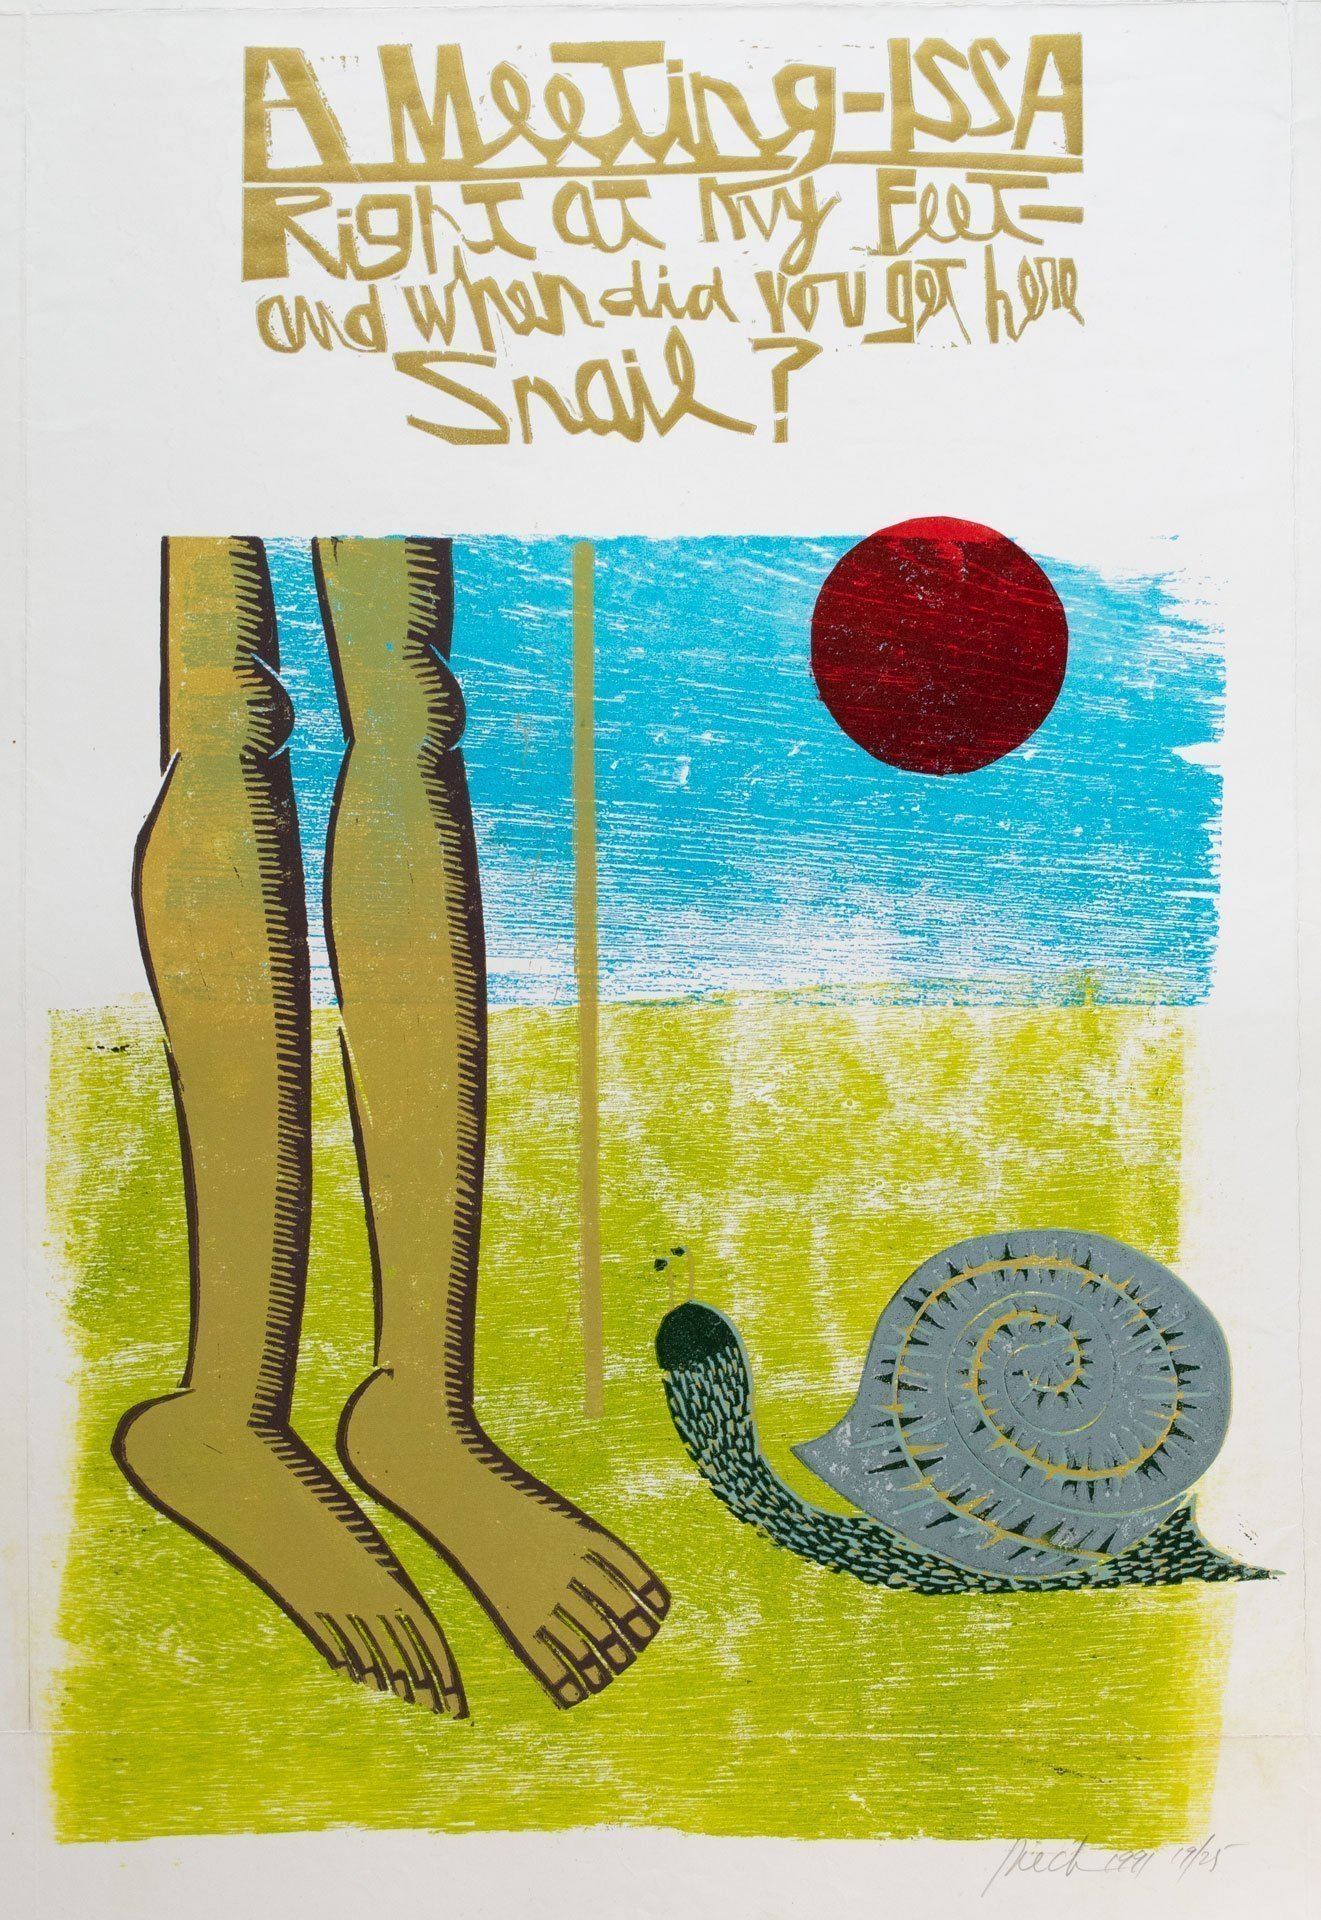 Of a Meeting with a Snail